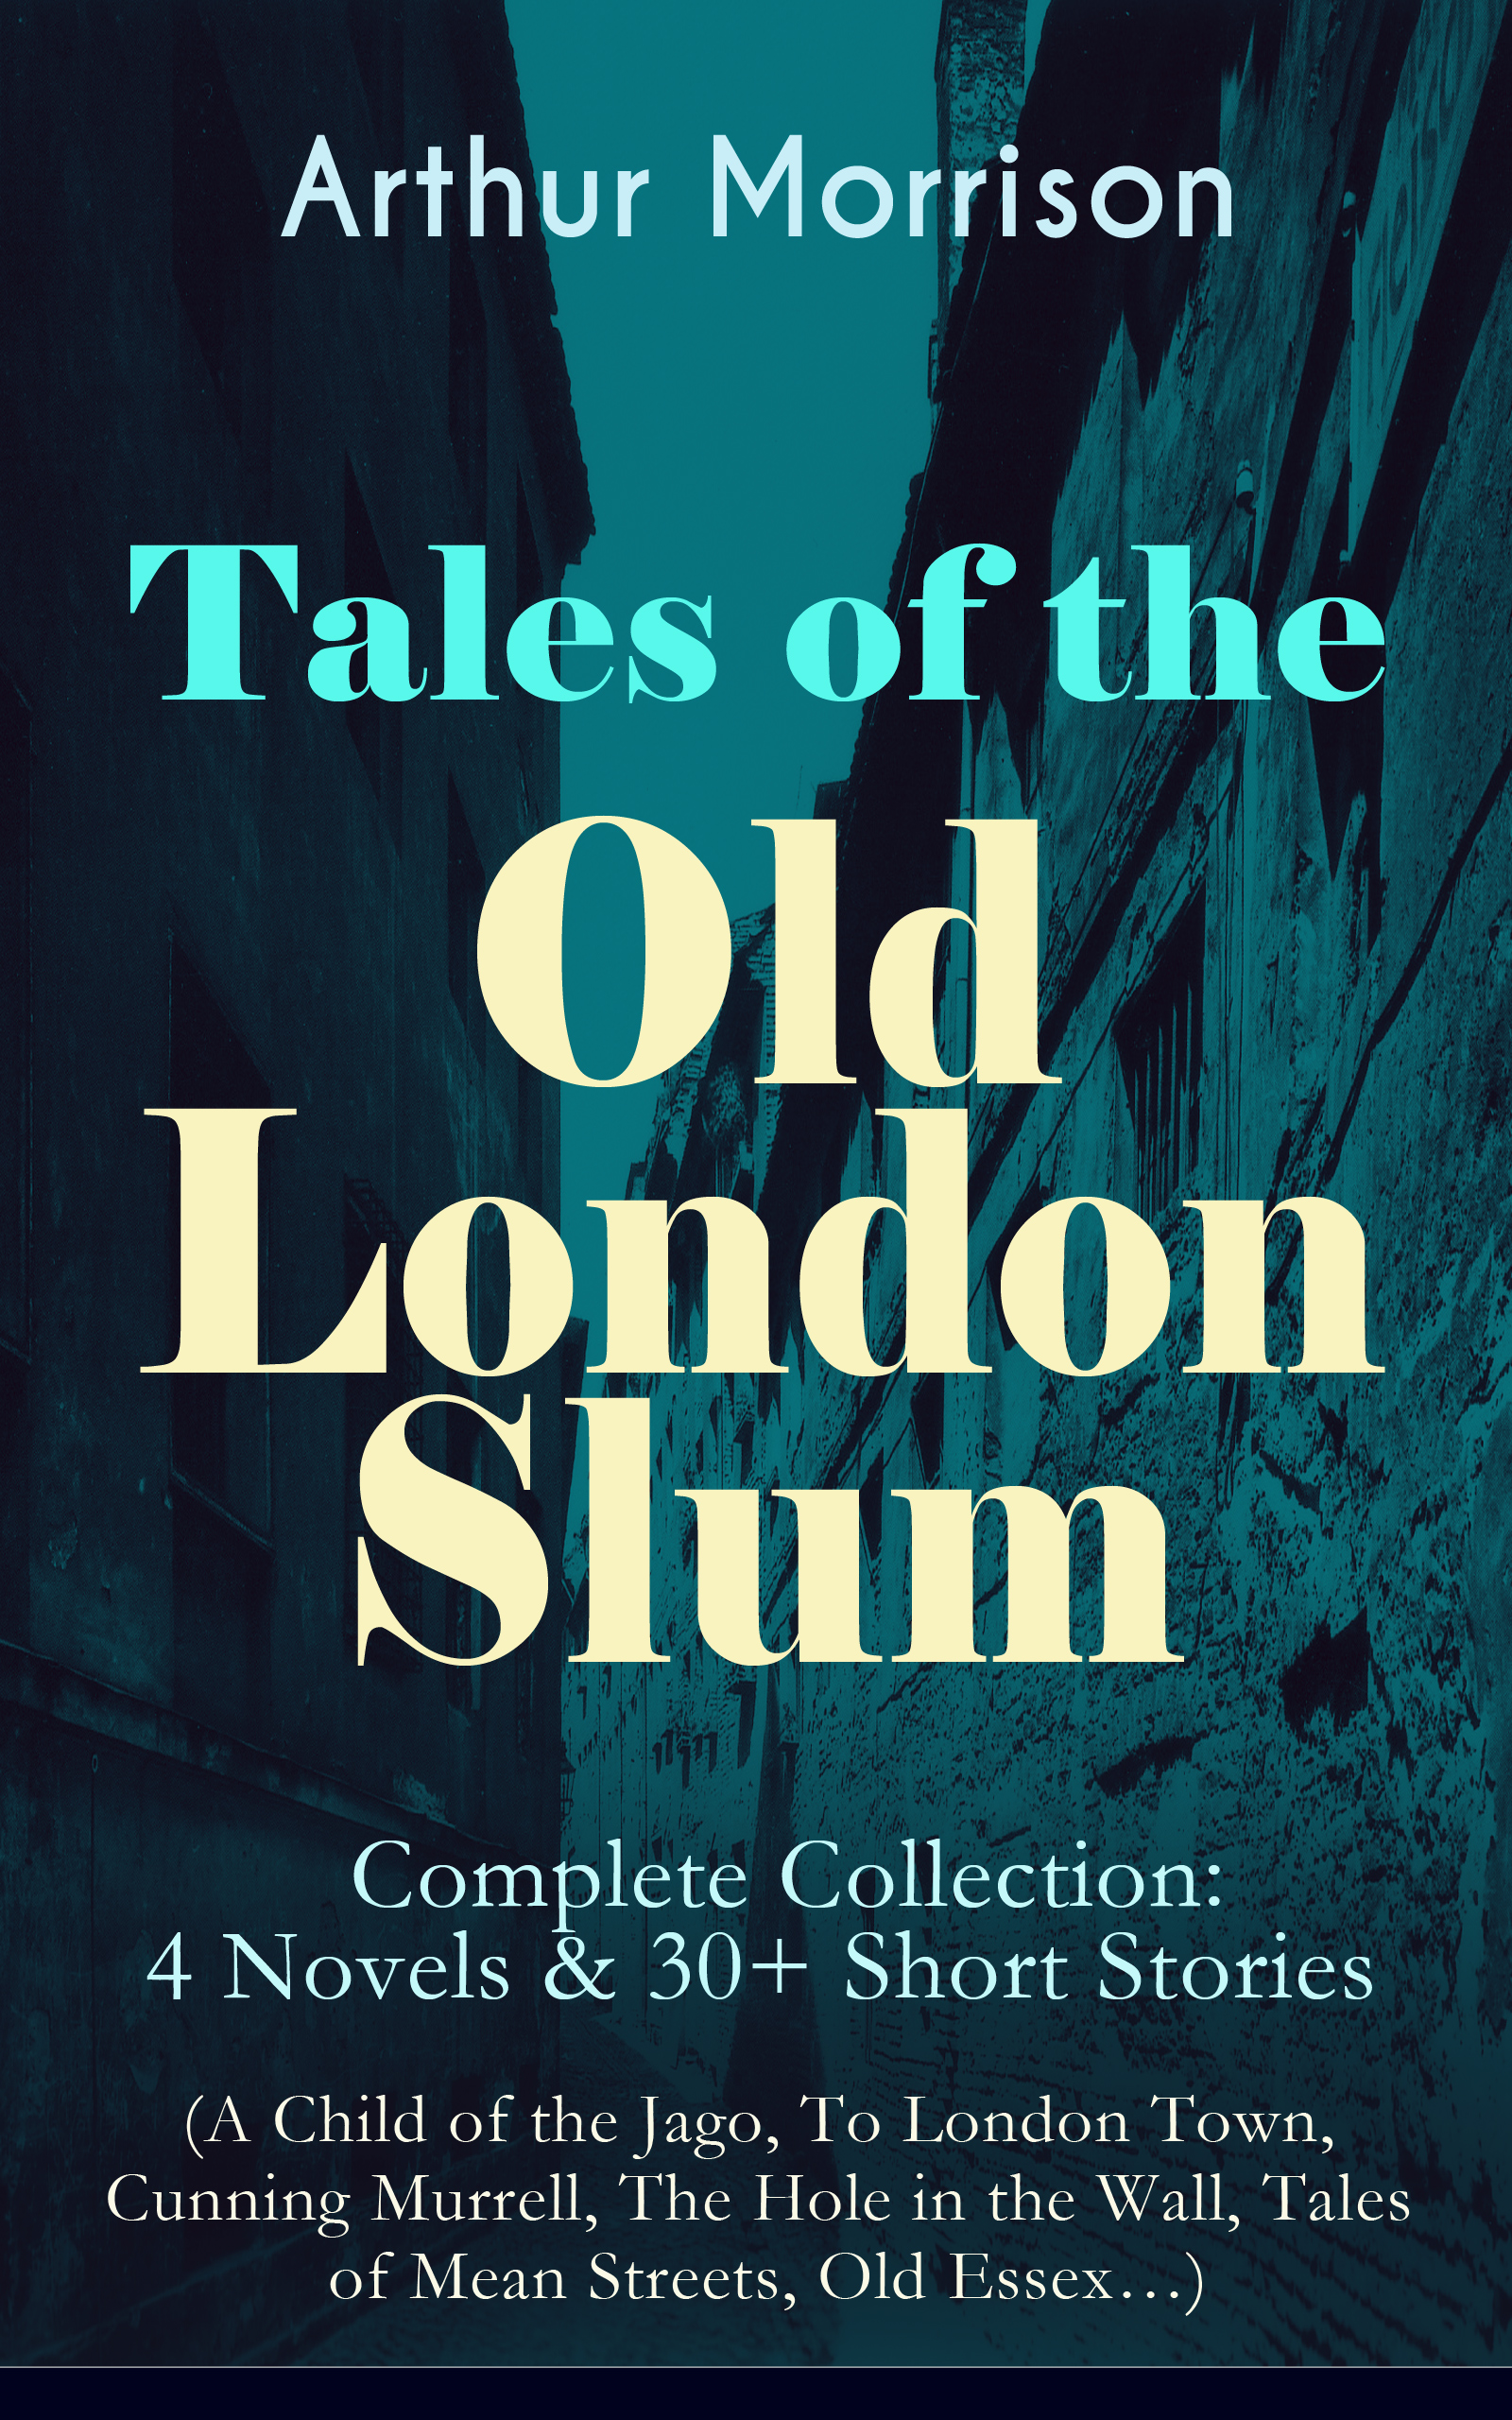 Arthur Morrison Tales of the Old London Slum – Complete Collection: 4 Novels & 30+ Short Stories (A Child of the Jago, To London Town, Cunning Murrell, The Hole in the Wall, Tales of Mean Streets, Old Essex…) mackenzie moulton london police divers stories 1983 to 1996